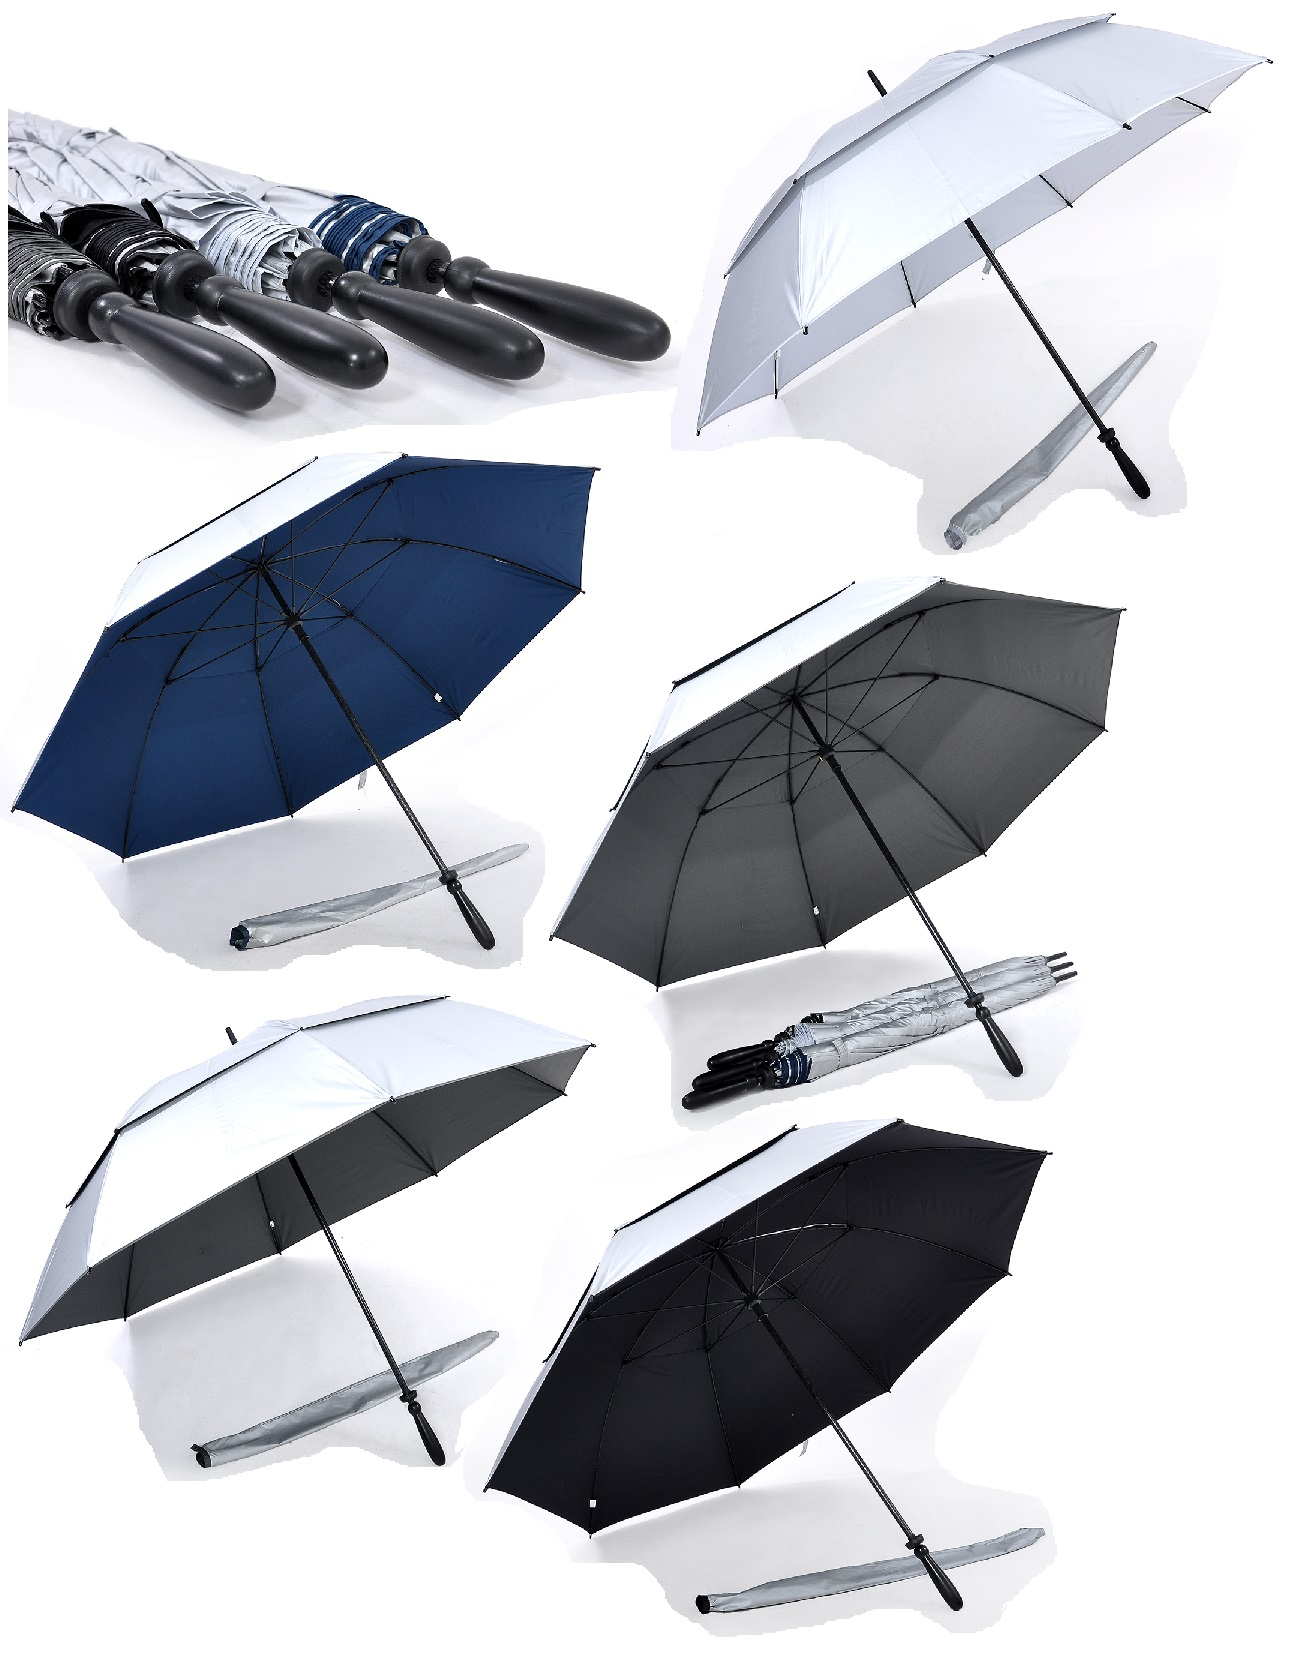 30inch Full Windproof Golf Umbrella with UV coating on exterior panels